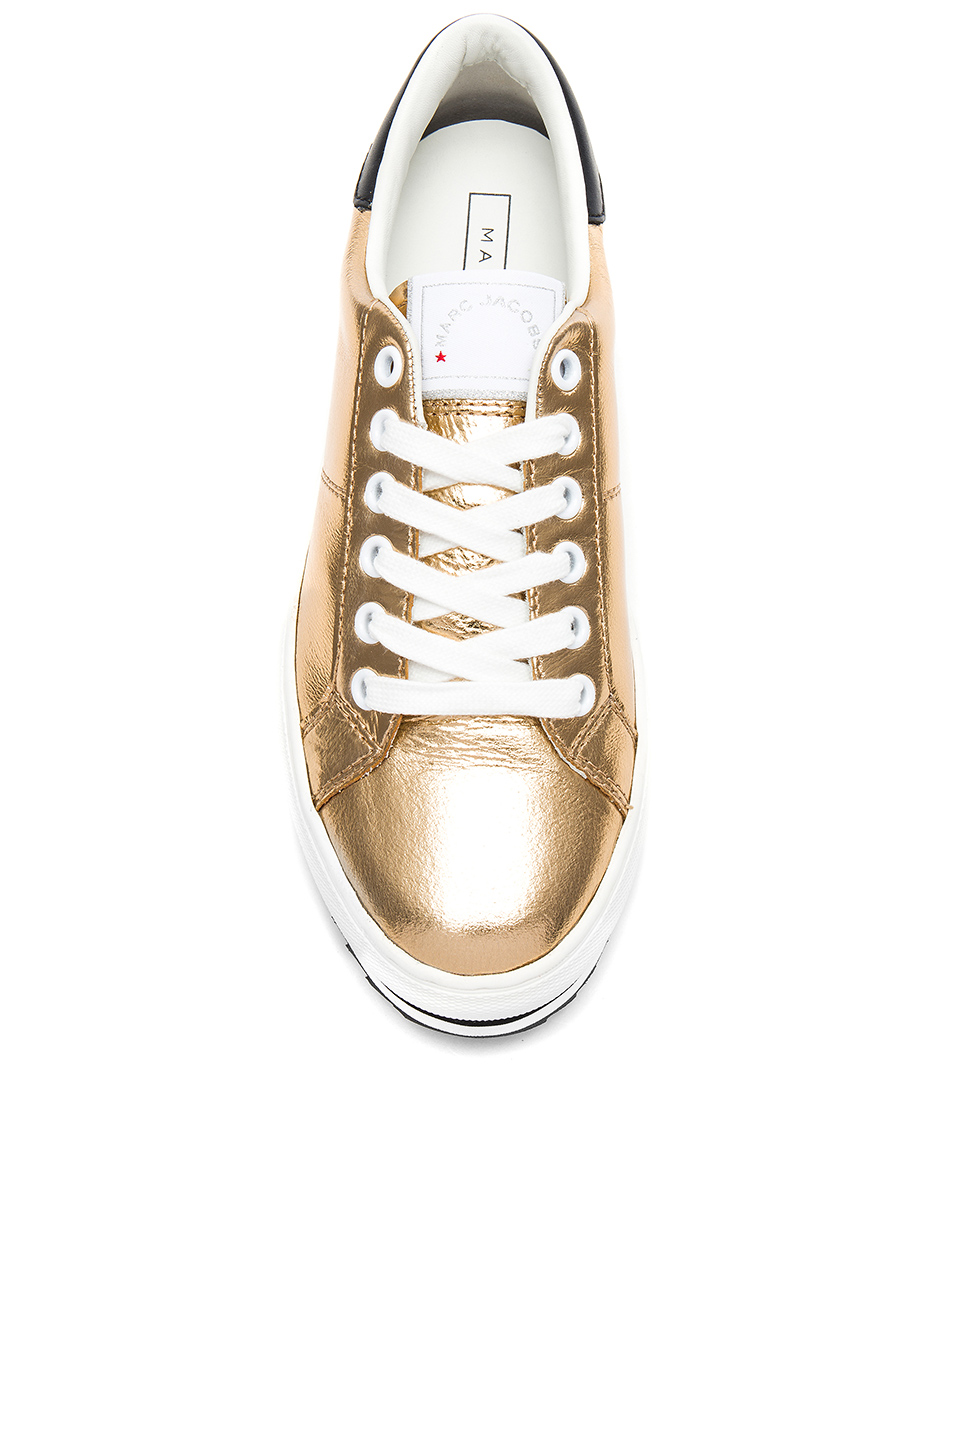 0423abb087f8 Buy Original Marc Jacobs Grand Platform Sneaker at Indonesia